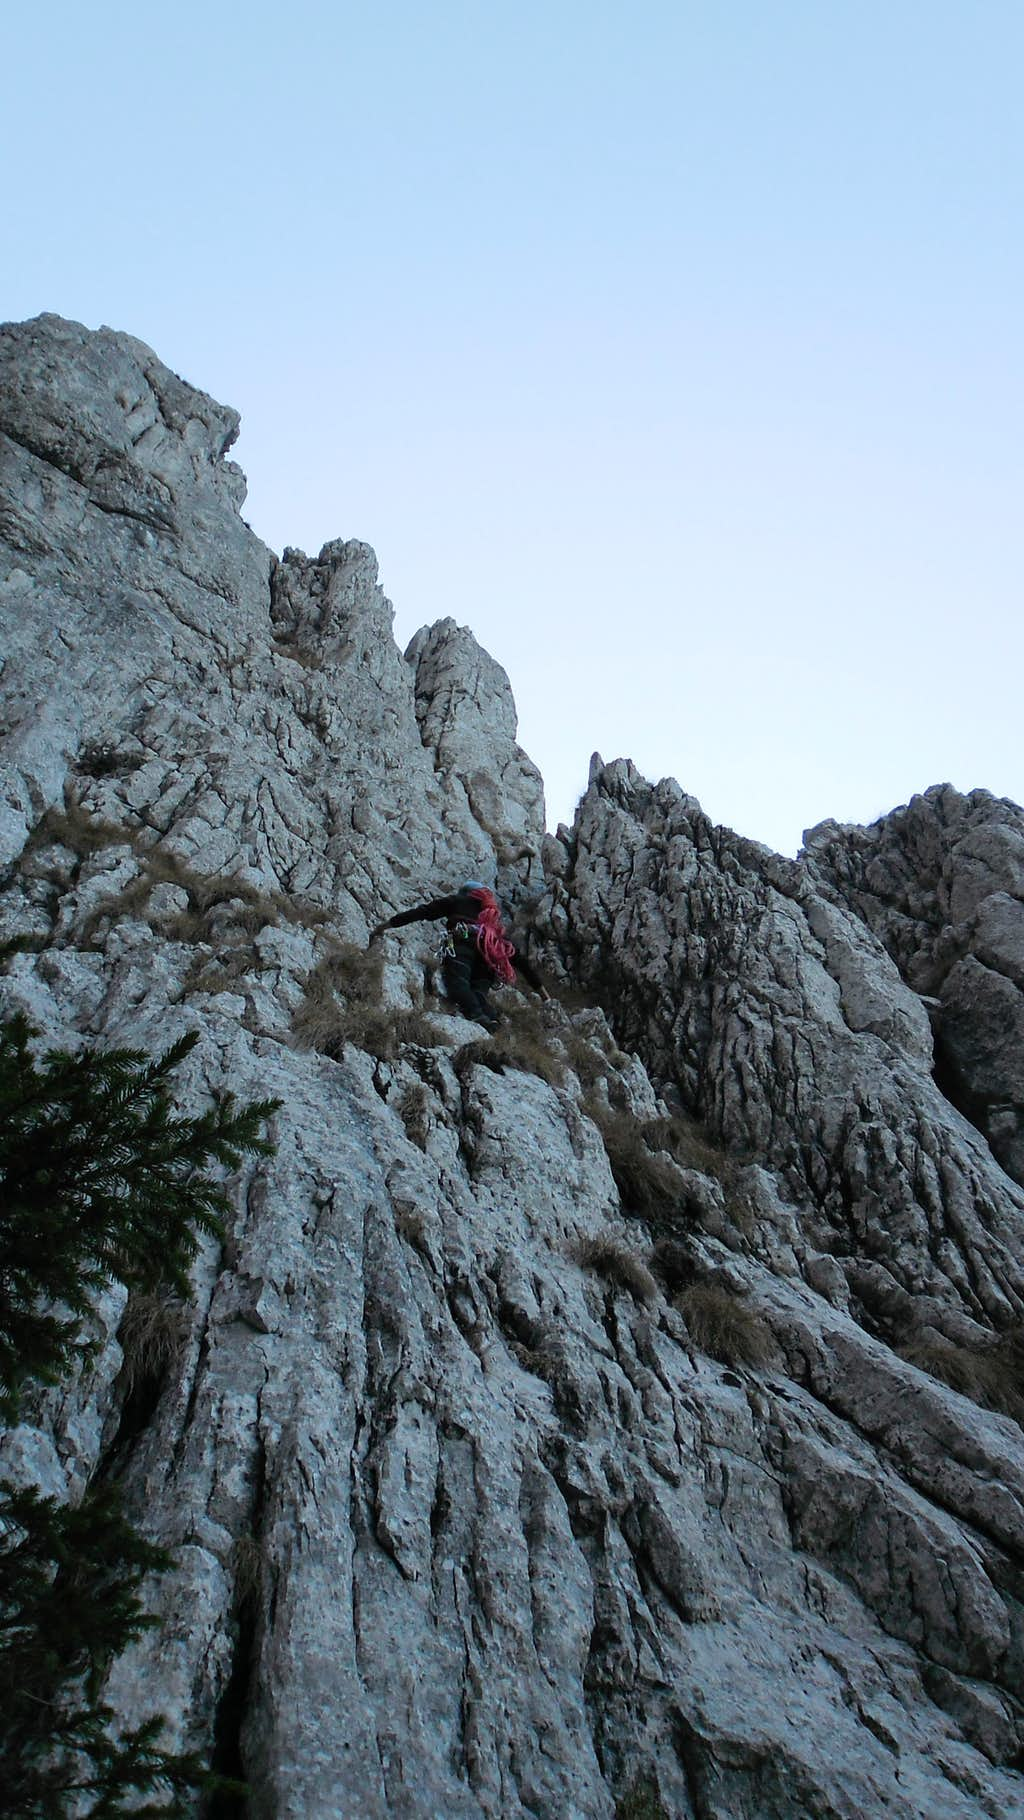 Andrei at begining of Coarnele Caprei ridge, 4A looking for the first bolt